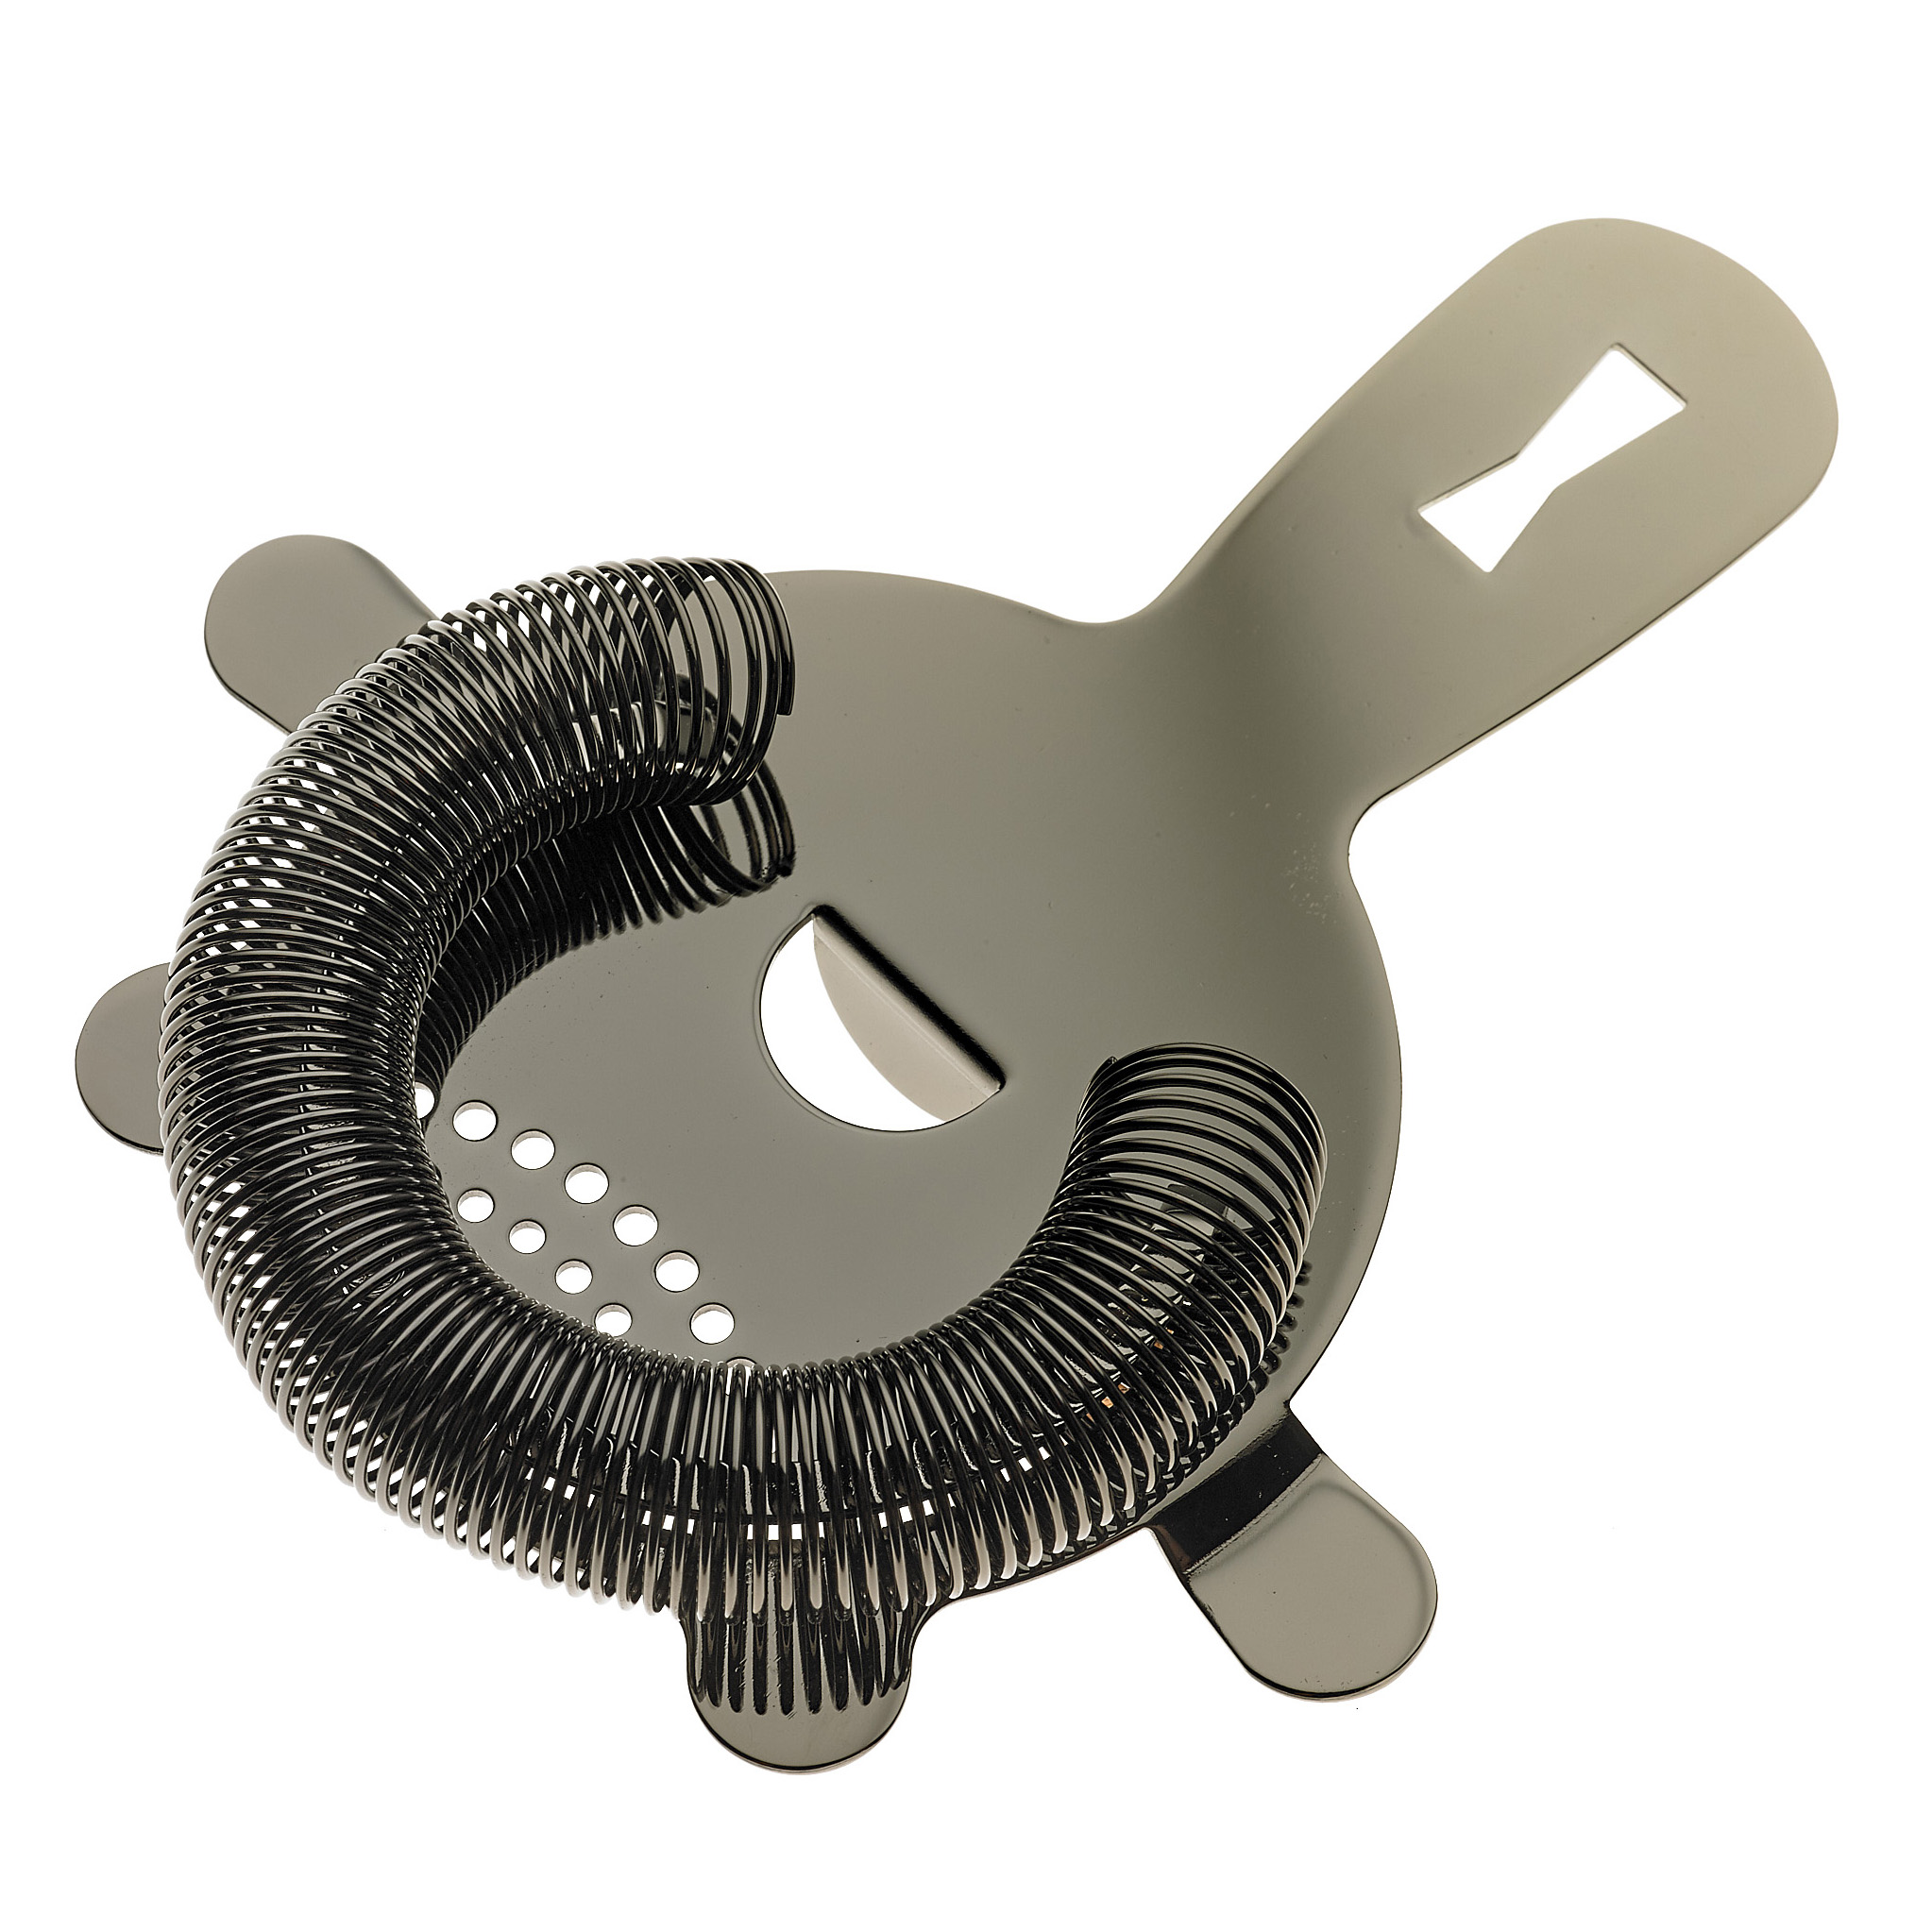 Barfly M37071BK bar strainer